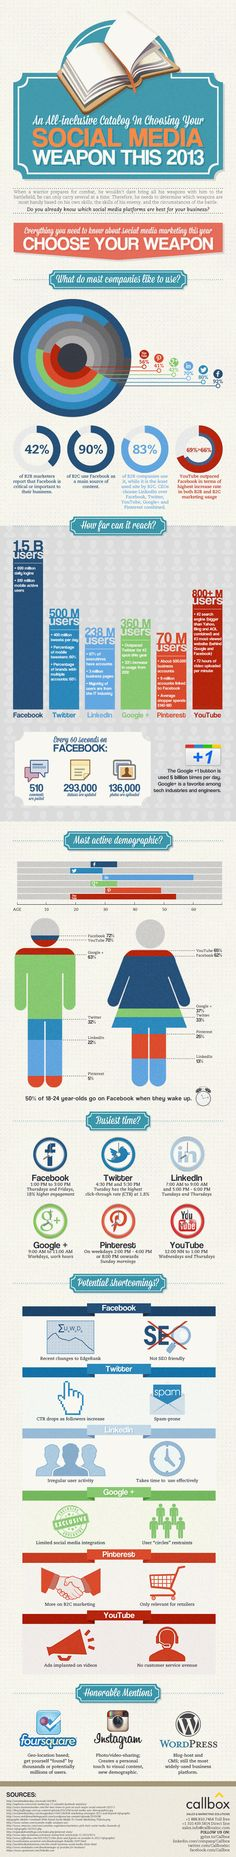 Social Media weapon this 2013 #infographic